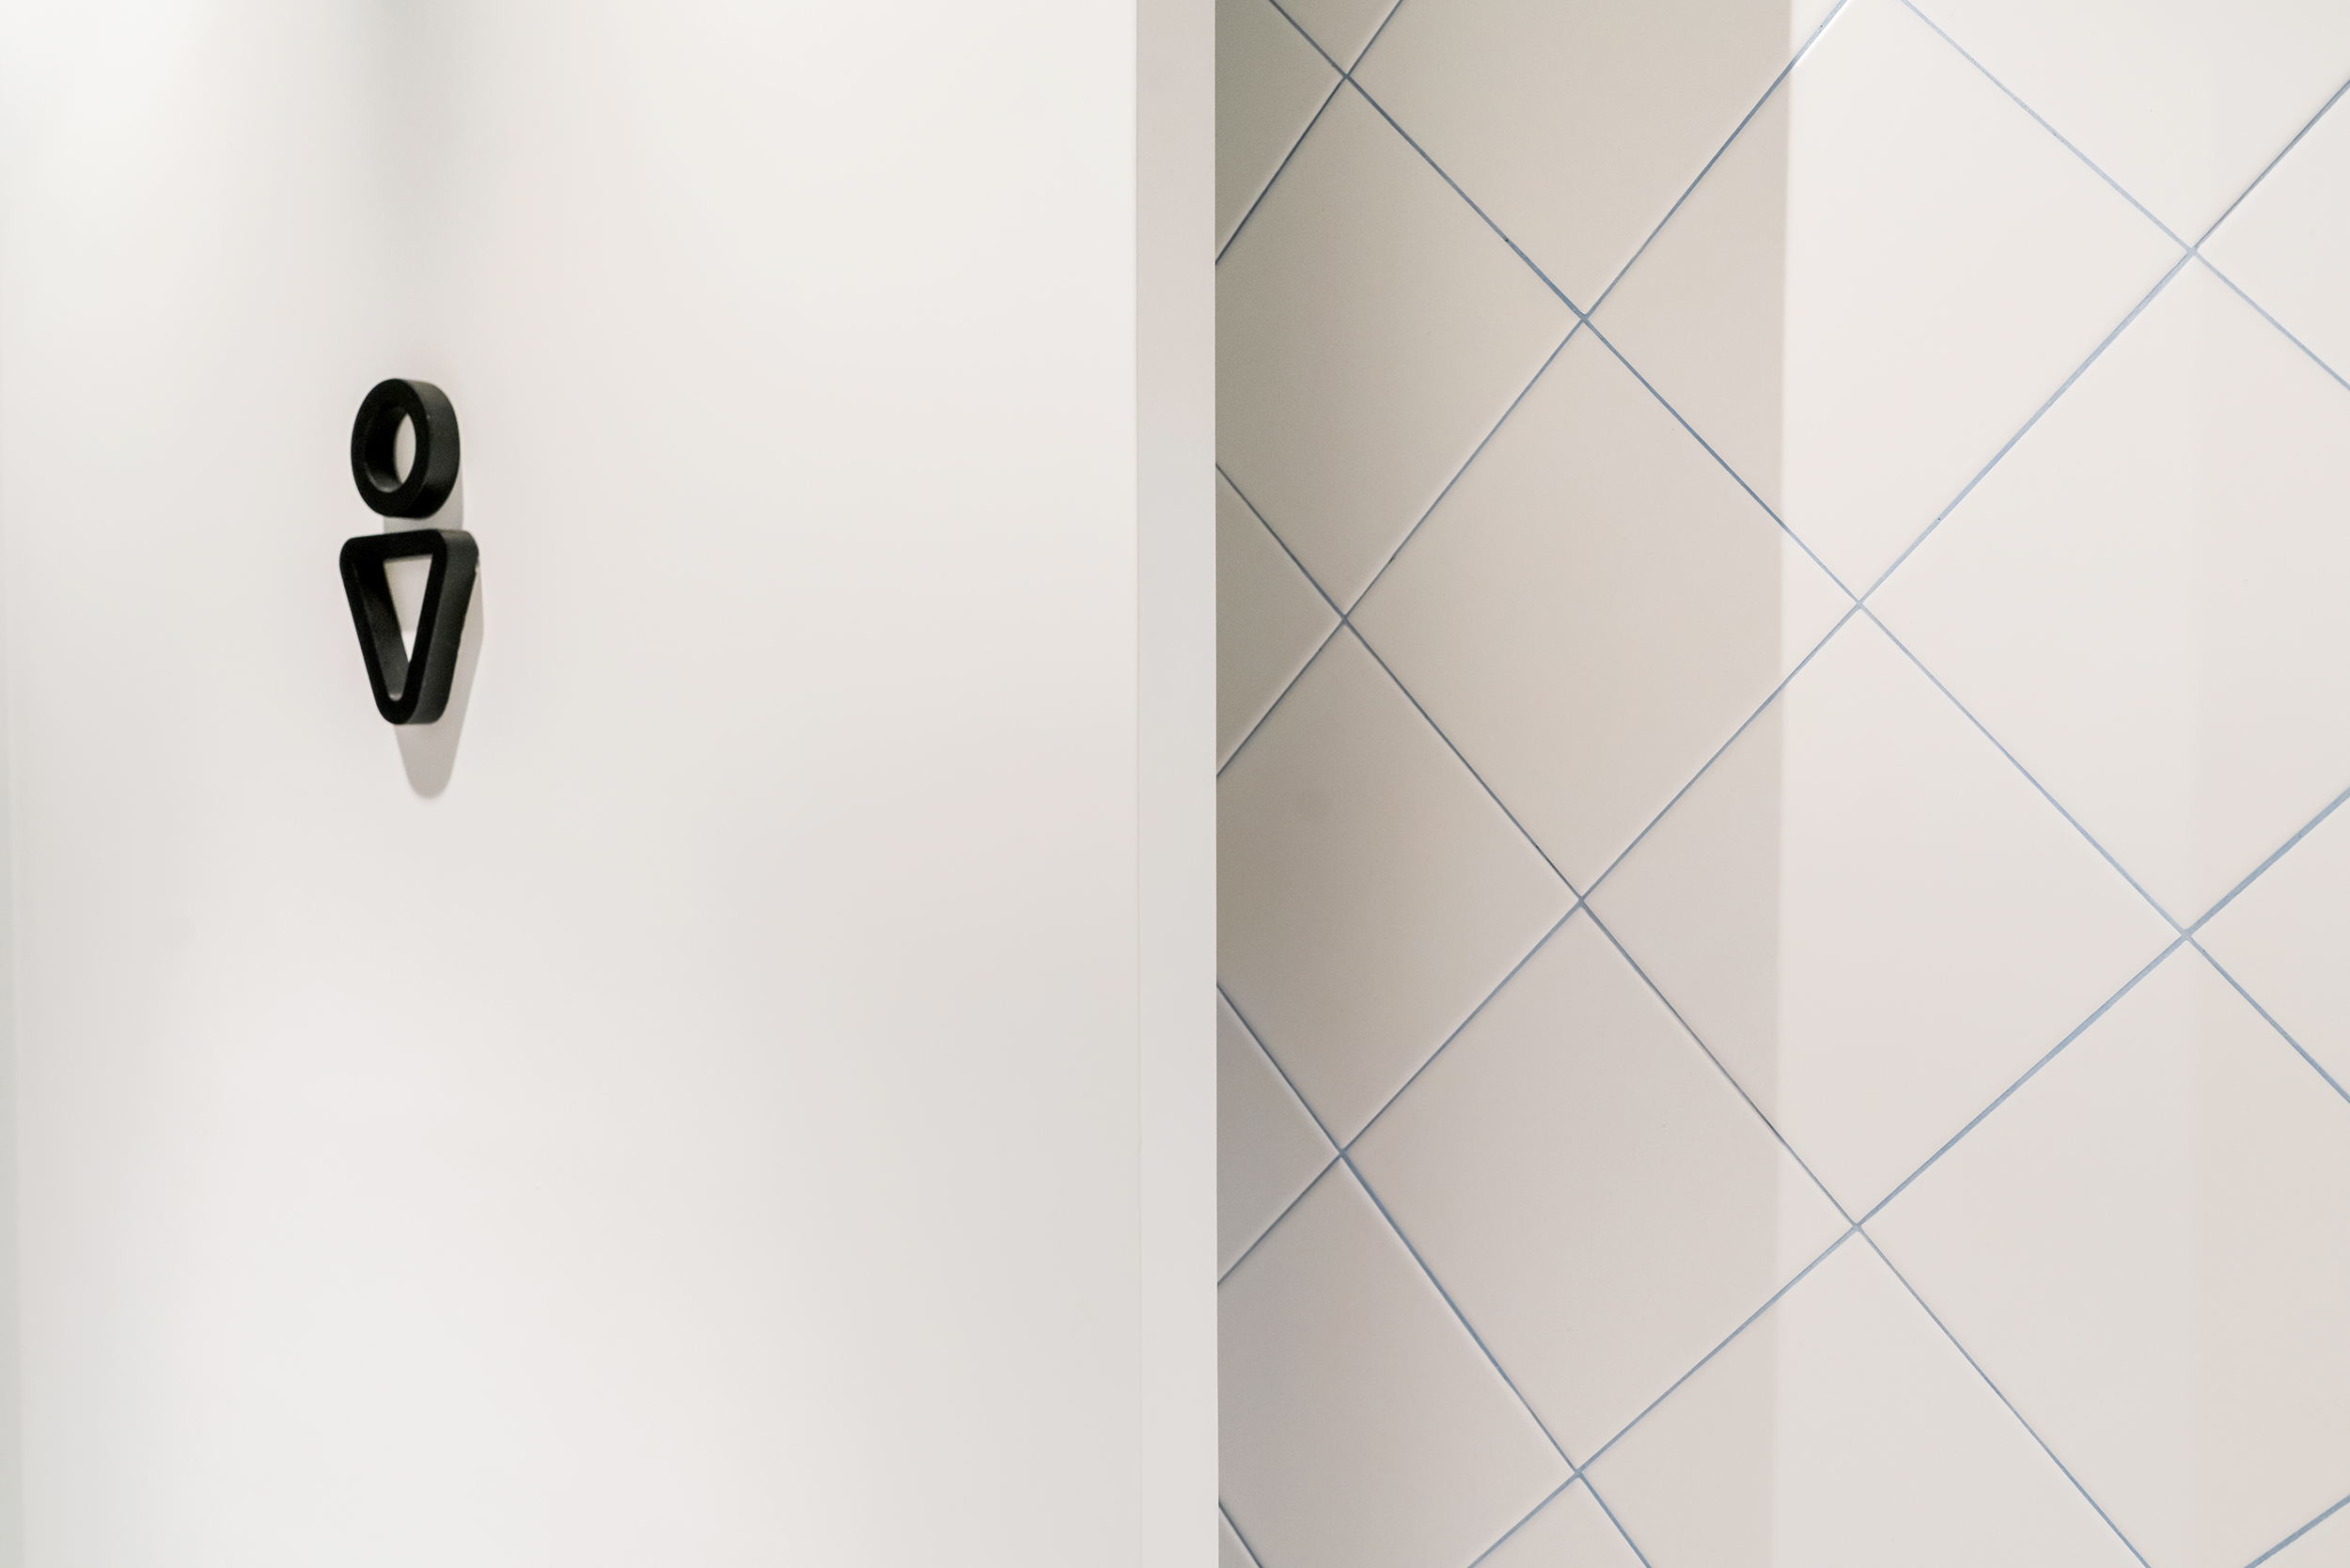 Washroom details. The use of coloured grout against the white tiles create playfulness in a subtle manner.